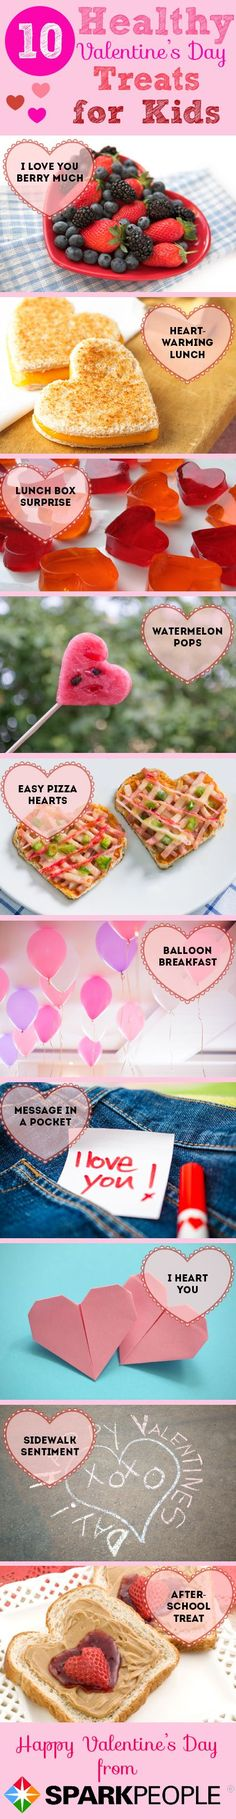 Kid-Friendly Valentine's Day Surprises--that are healthy! Click for recipes/instructions. | via @SparkPeople #food #fun